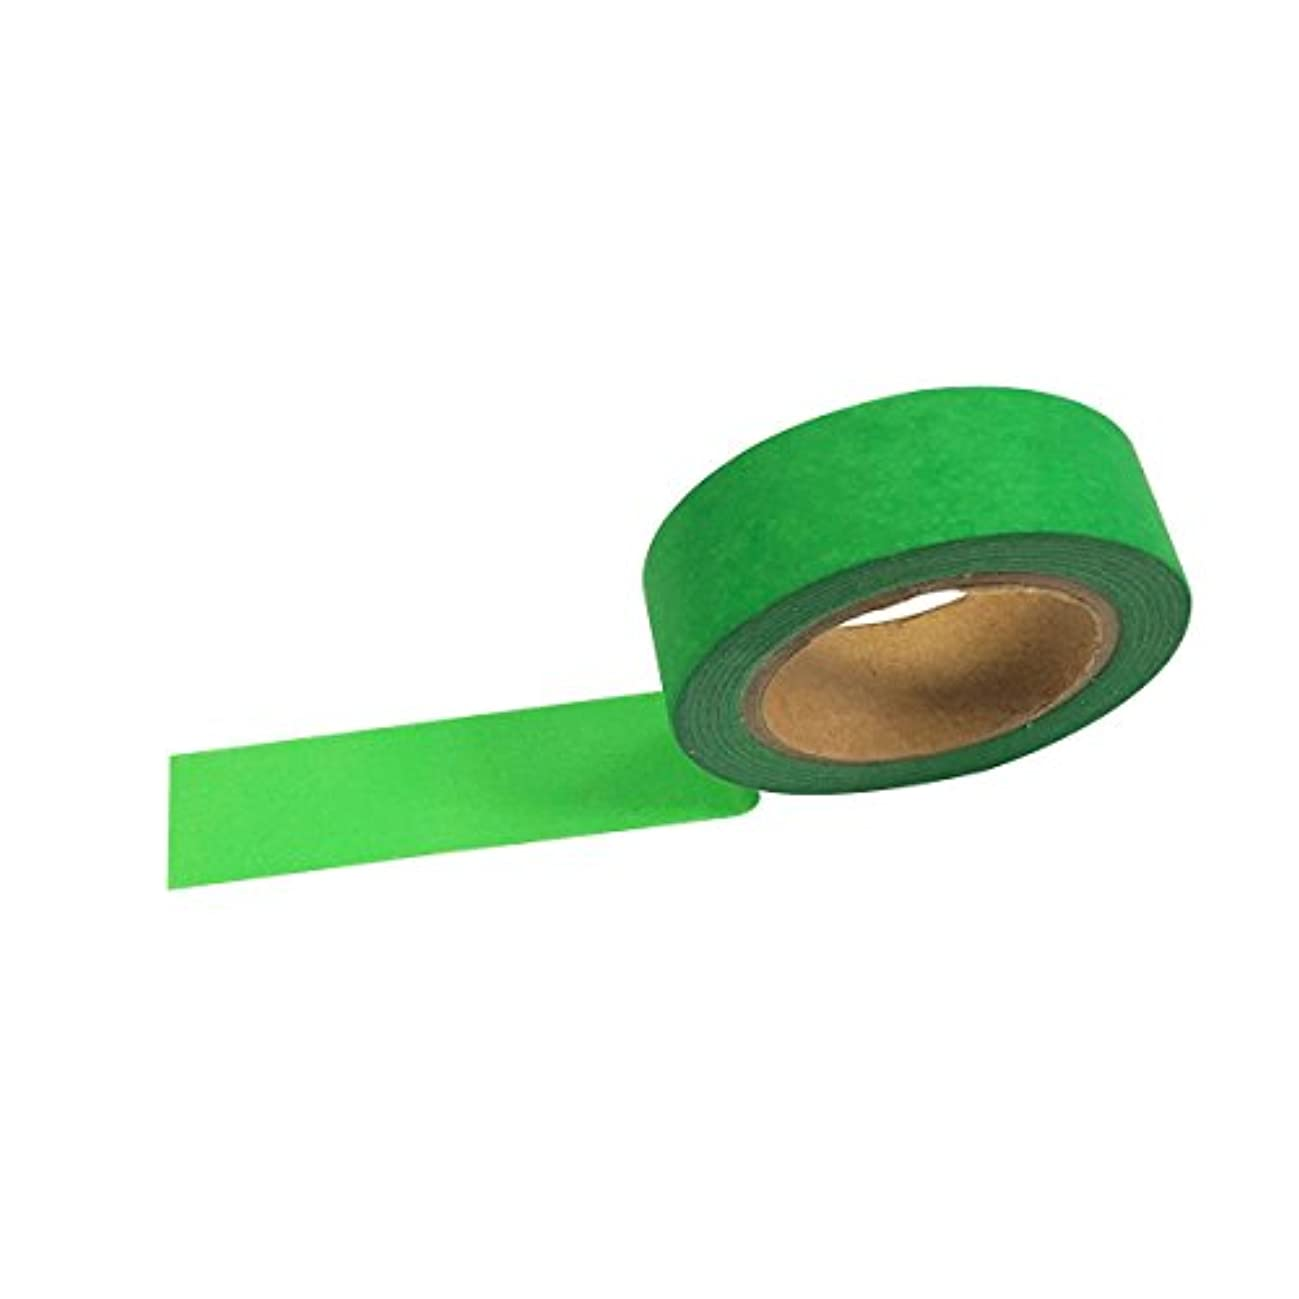 AllyDrew Washi Tapes Decorative Masking Tapes, Fluorescent Green